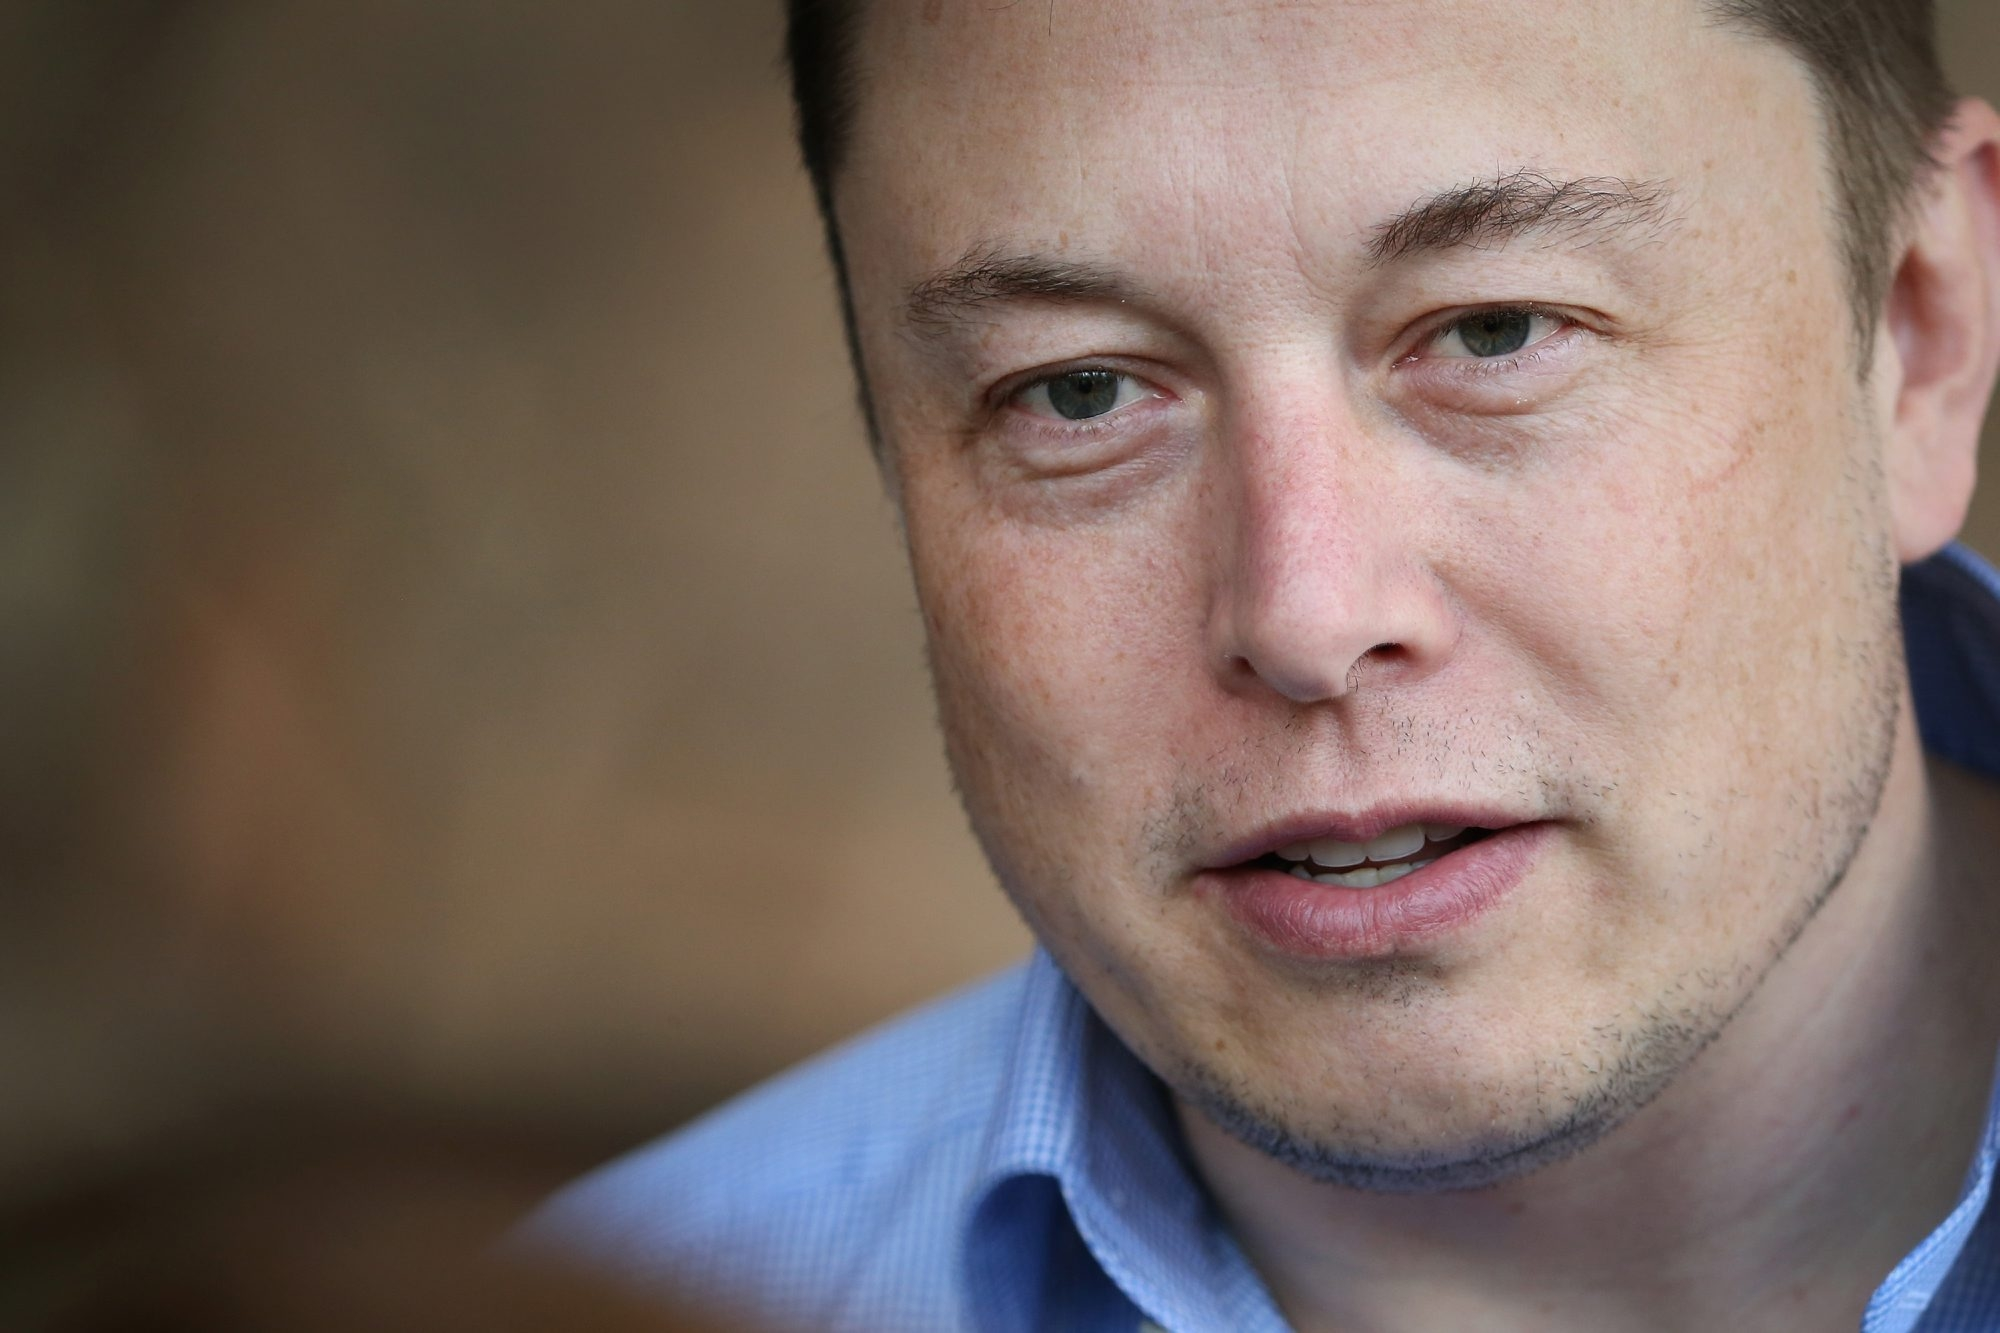 Elon Musk is the chief executive officer and chief technology officer of SpaceX, CEO and product architect of Tesla Motors, and the chairman and founder of SolarCity. Tesla has proposed acquiring SolarCity.